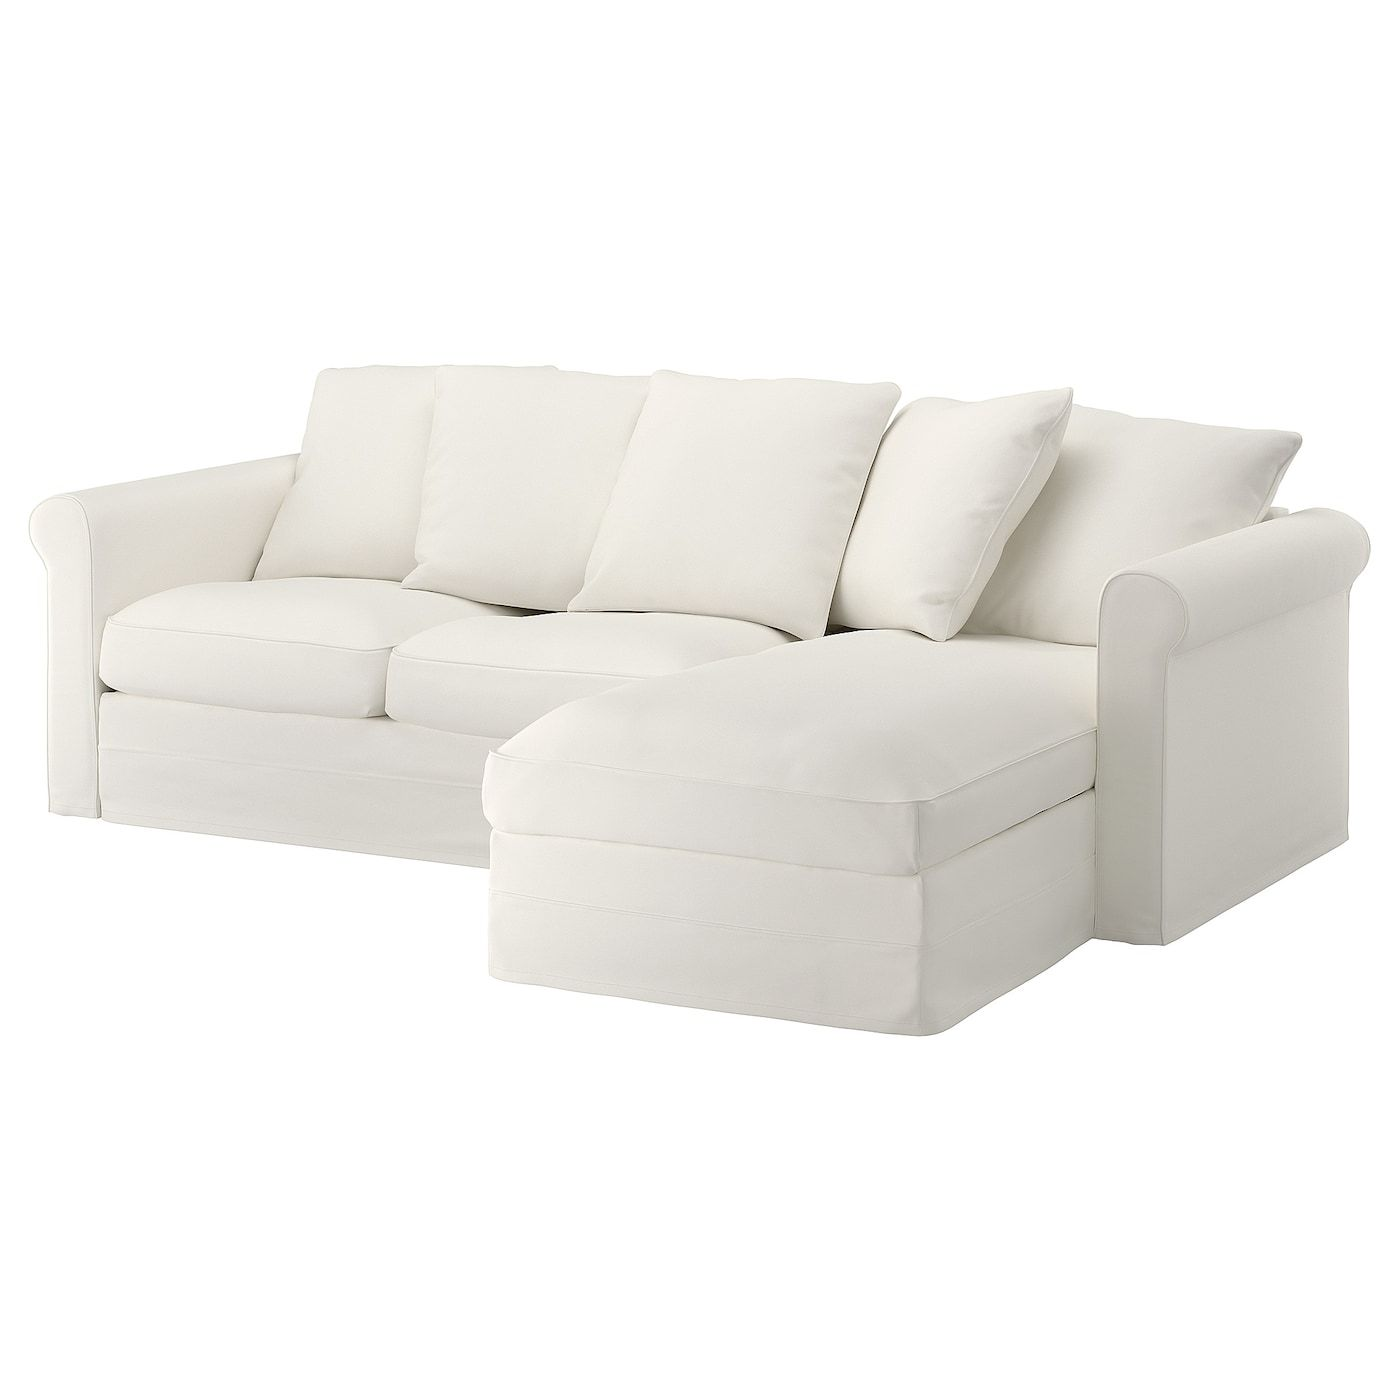 Gronlid Sofa With Chaise Inseros White In 2020 Sofa Bed With Chaise Sofa Back Cushions